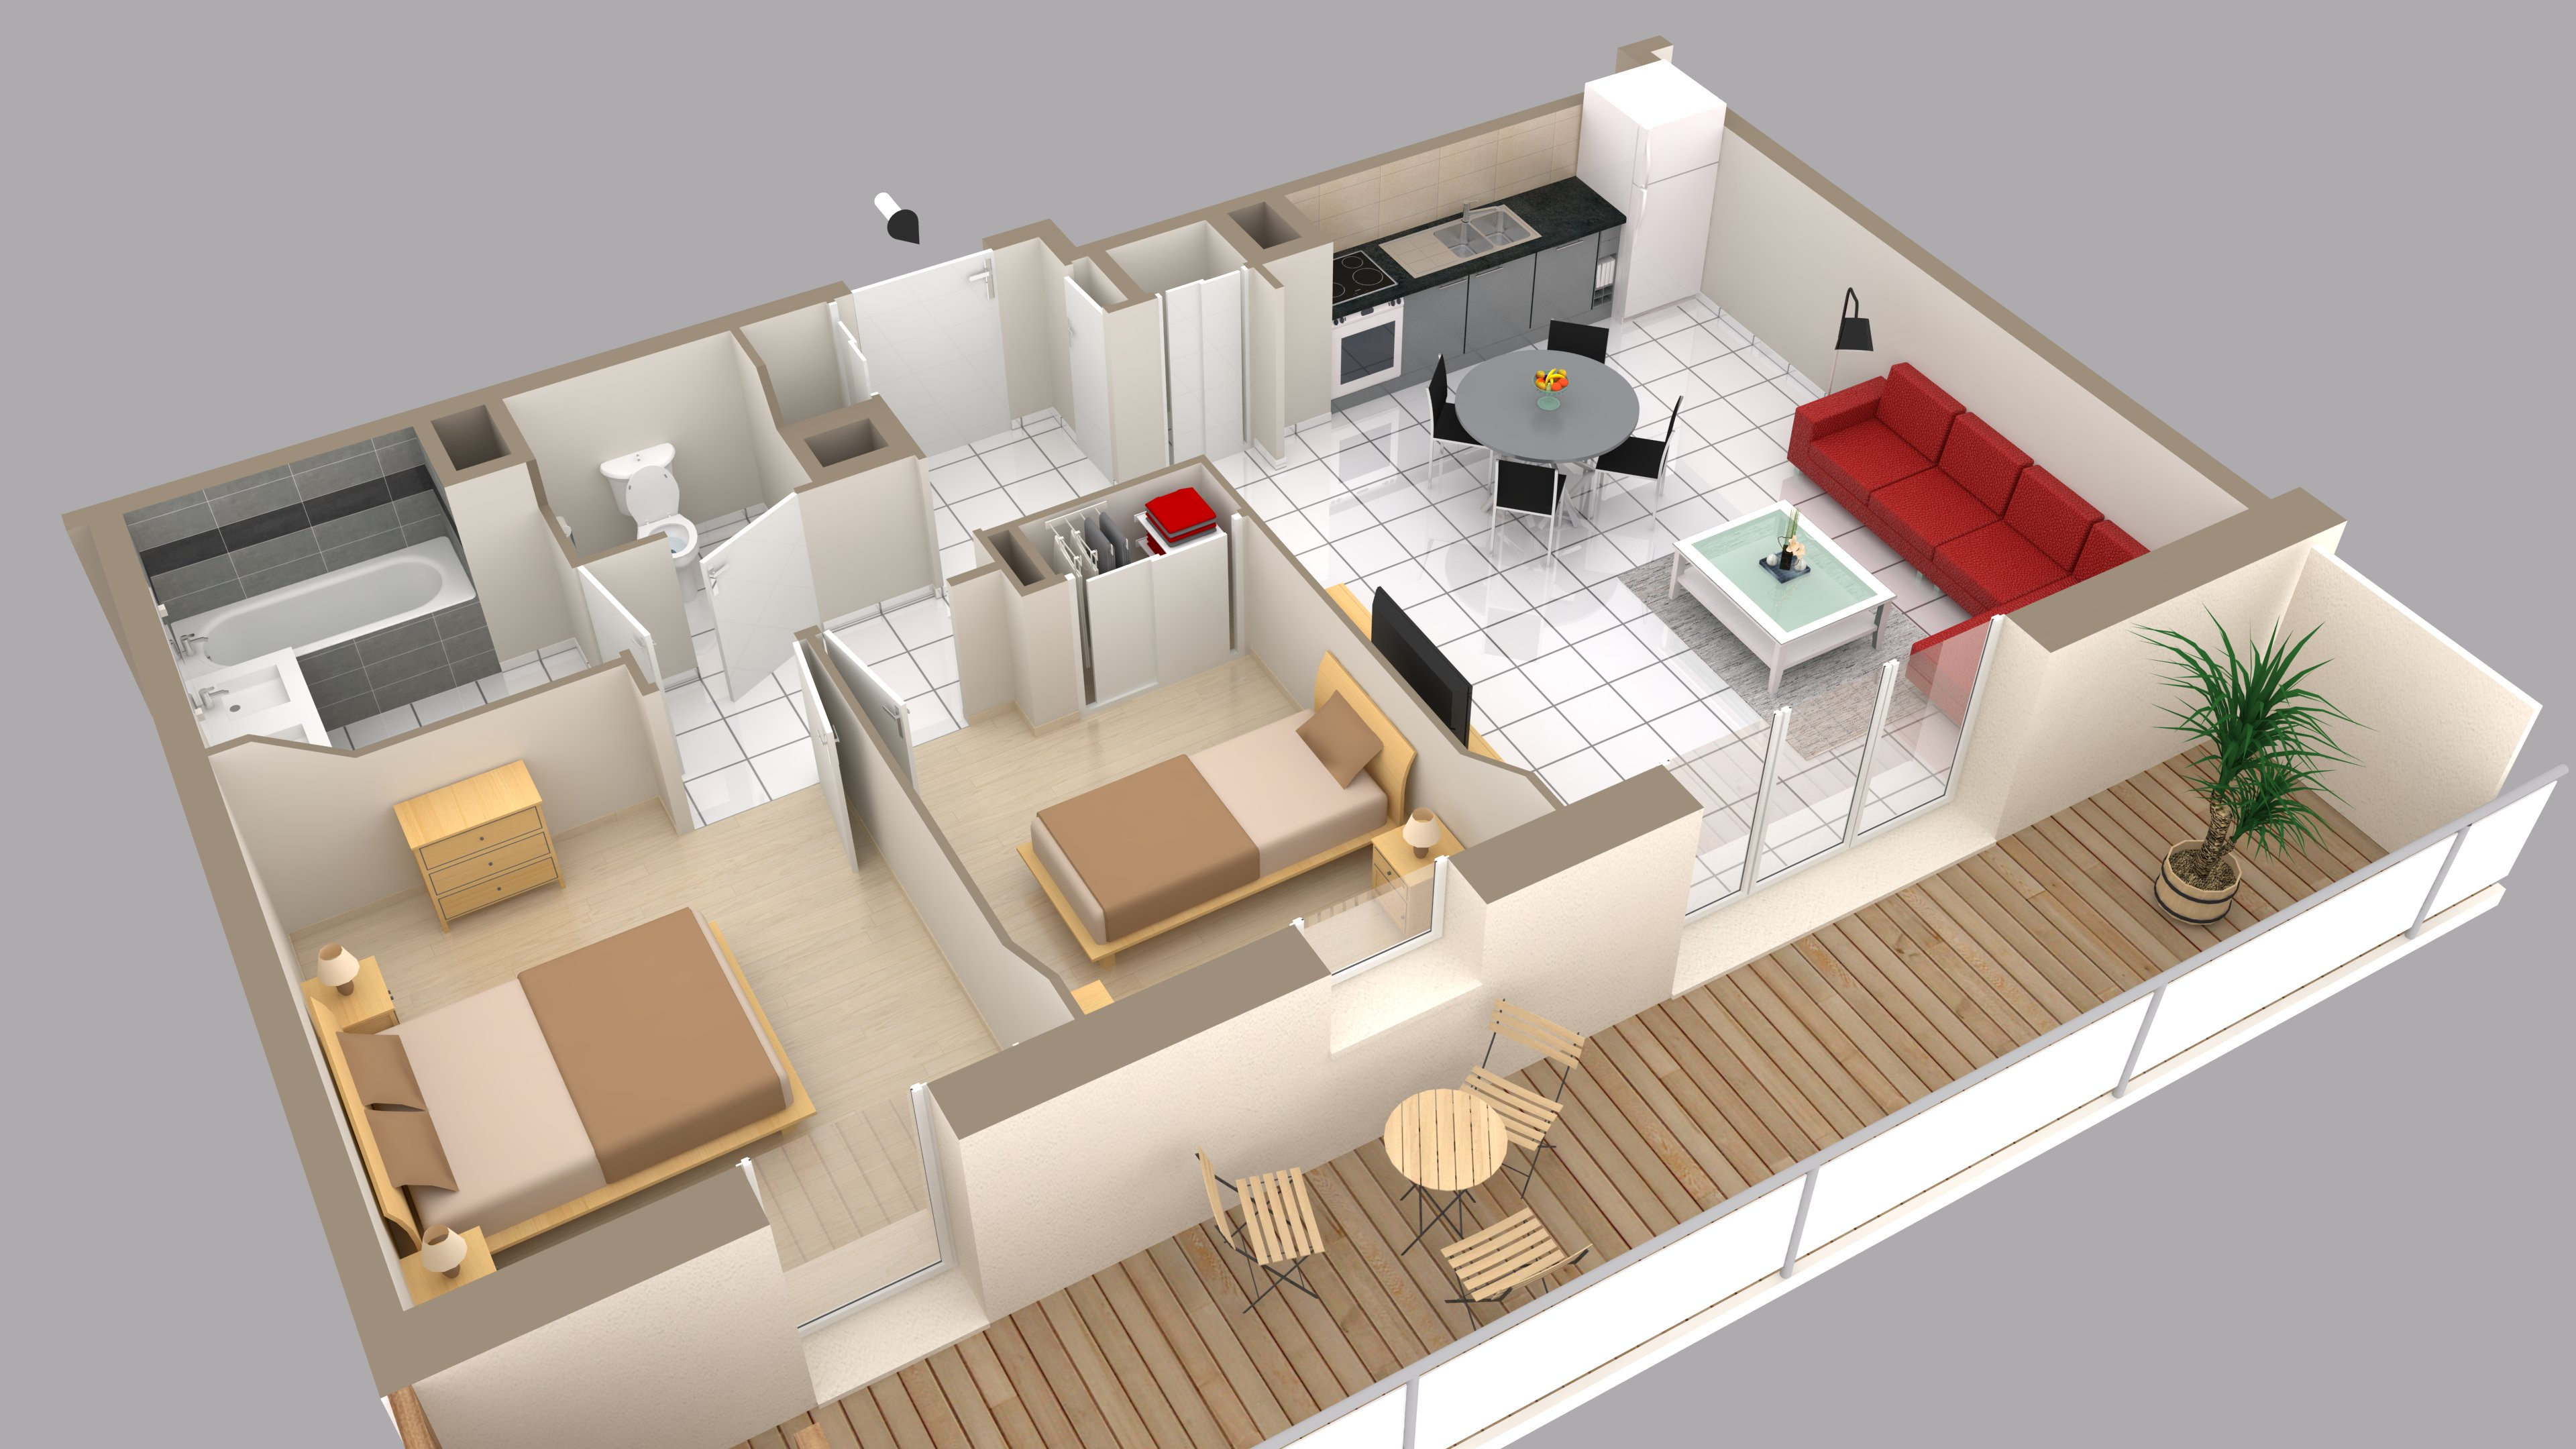 3d contacts fiche la vue d 39 ensemble meubl e en perspective for Interieur maison 3d